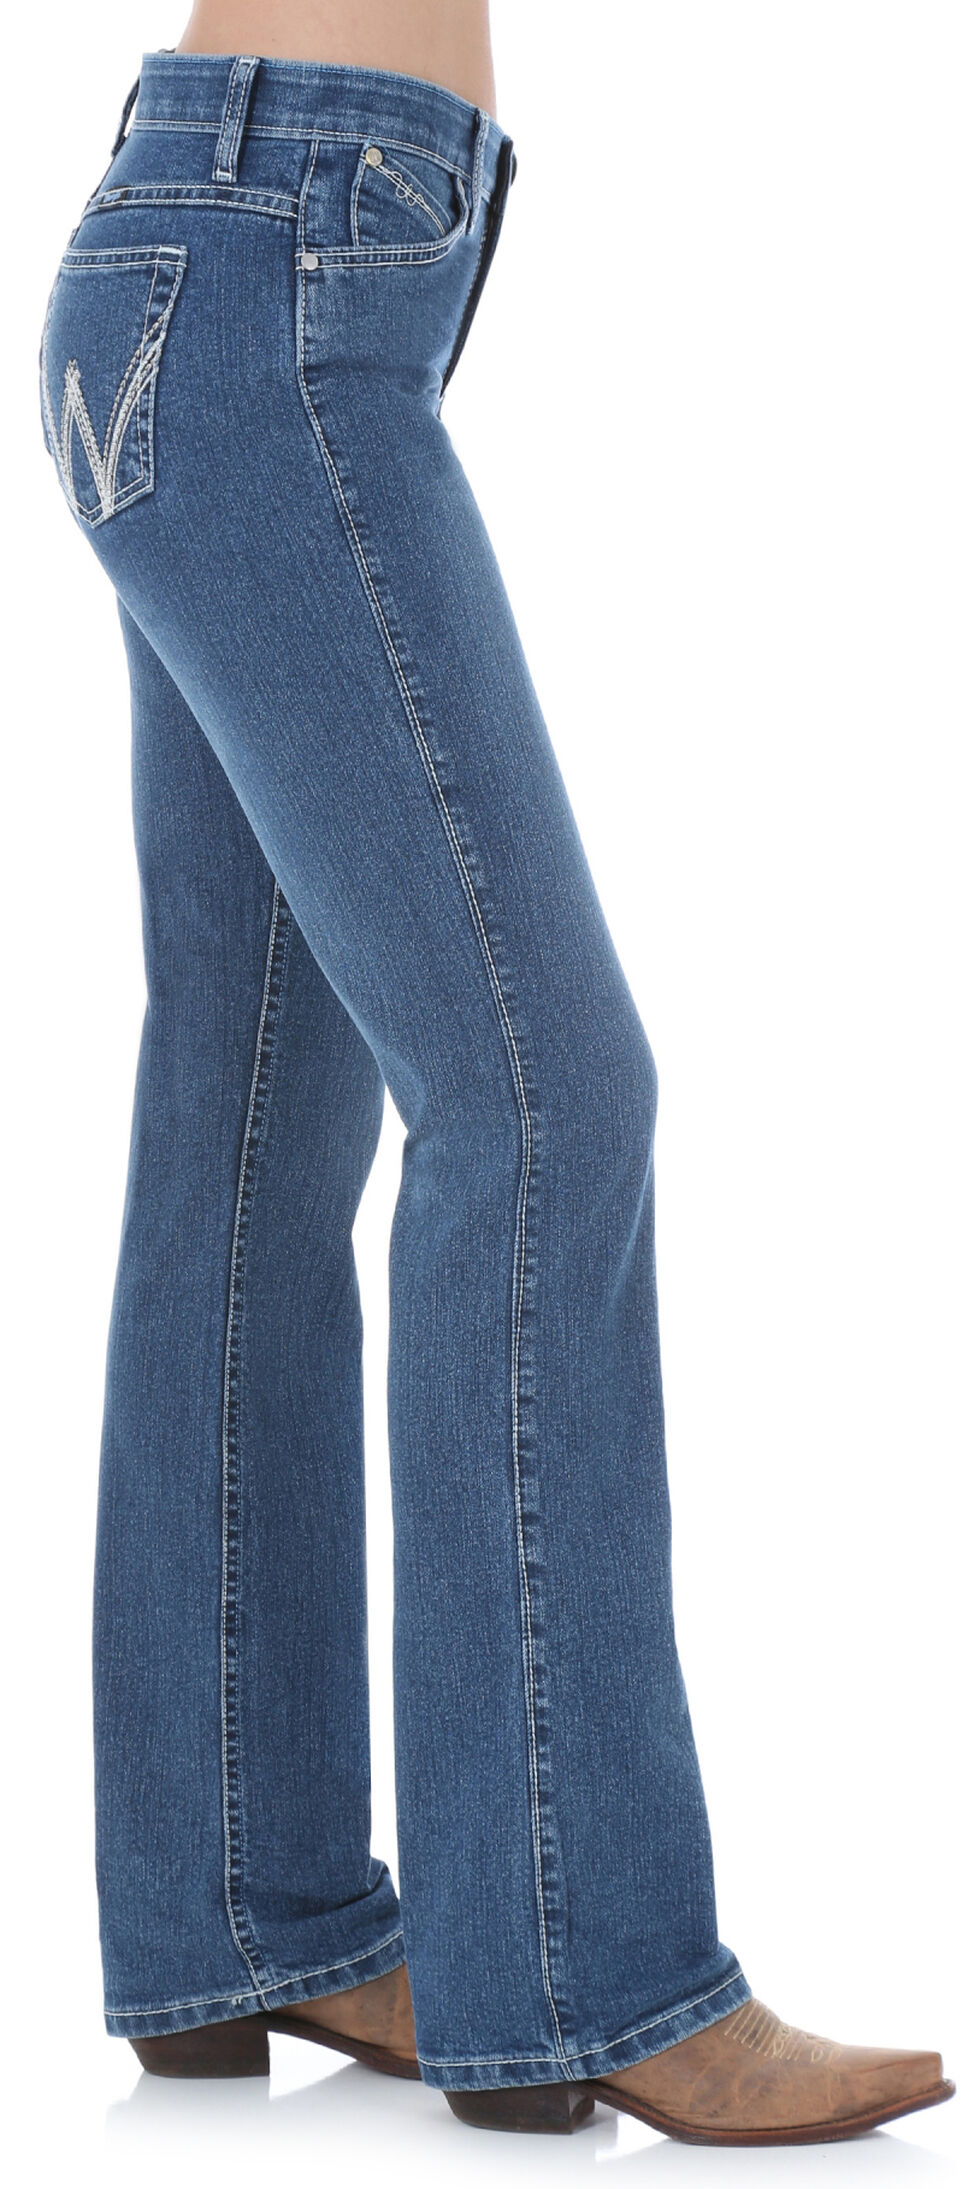 Wrangler Women's Medium Wash Cool Vantage Ultimate Riding Q-Baby Jeans, Denim, hi-res